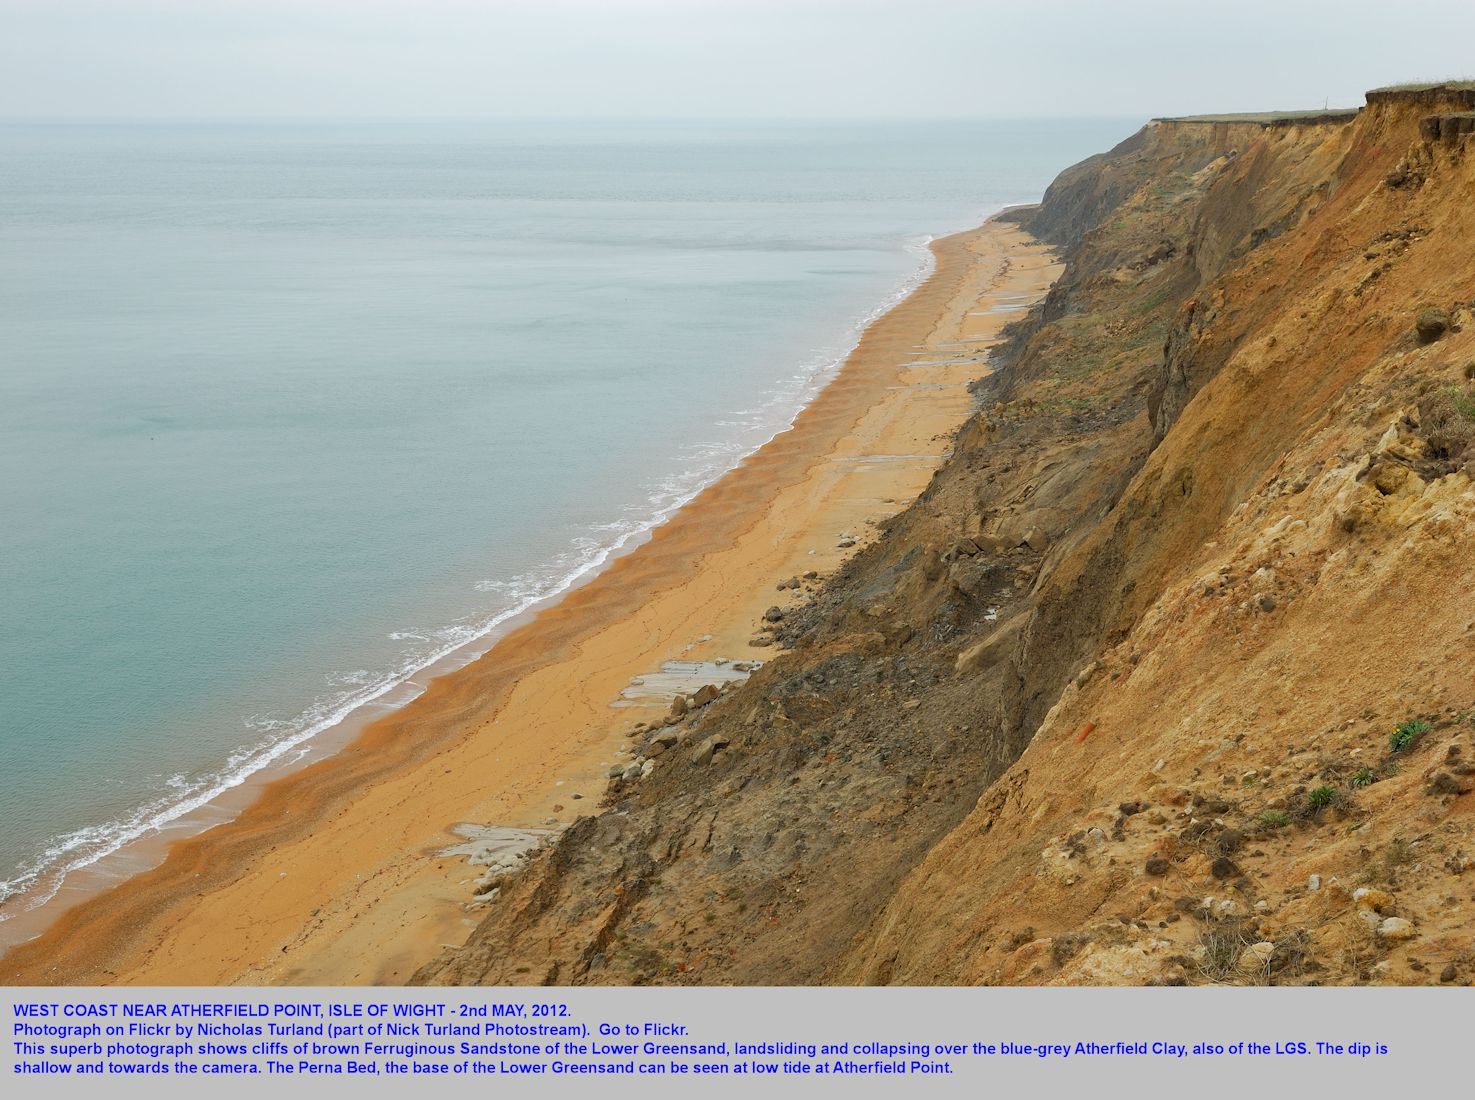 Chale Bay, Isle of Wight, looking northwest to Atherfield Point, with Ferruginous Sands of the Upper Greensand landslipping and falling over blue-grey Atherfield Clay, Nick Turland photograph, May, 2012